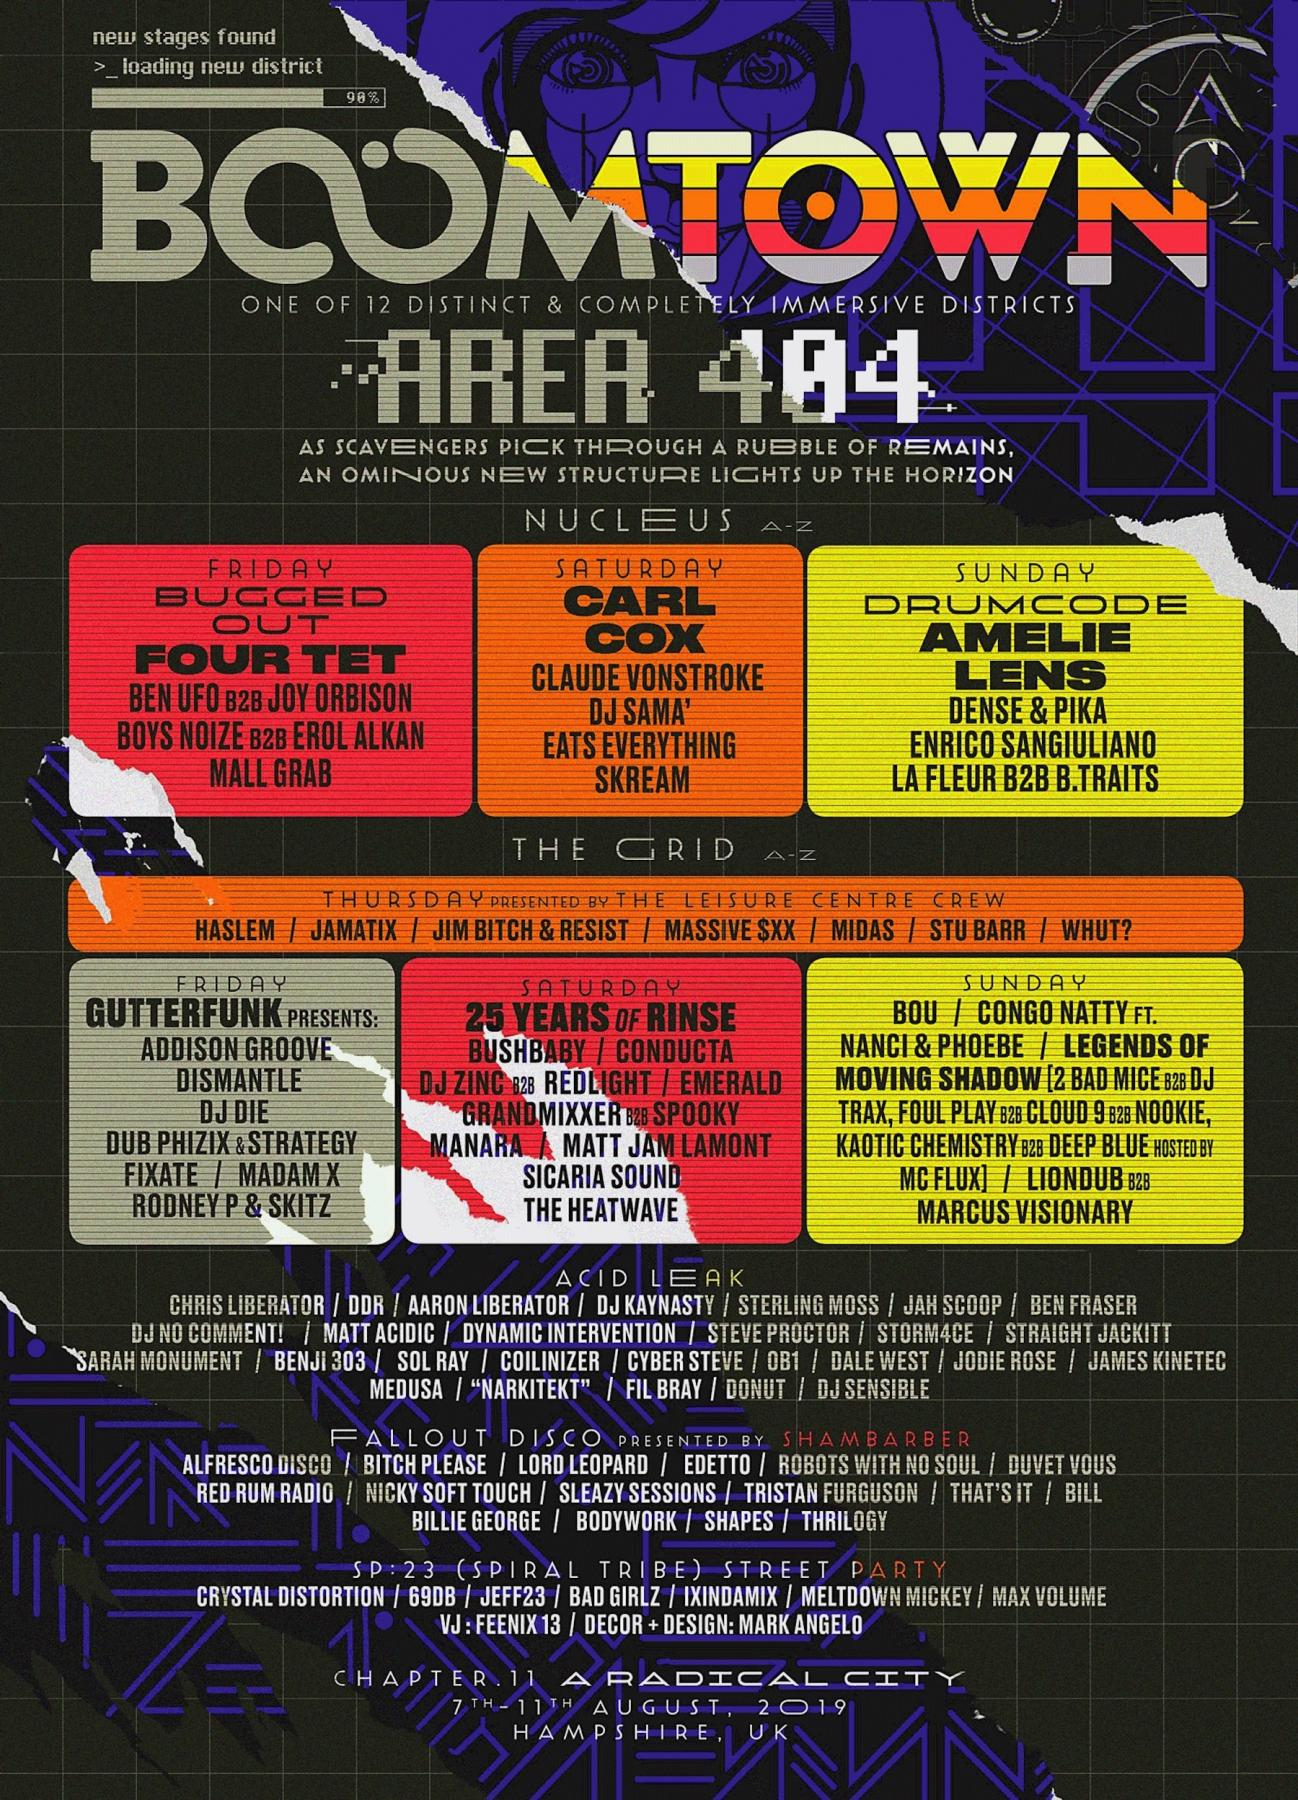 BOOMTOWN 2019 unveils 4 new stages for AREA 404!